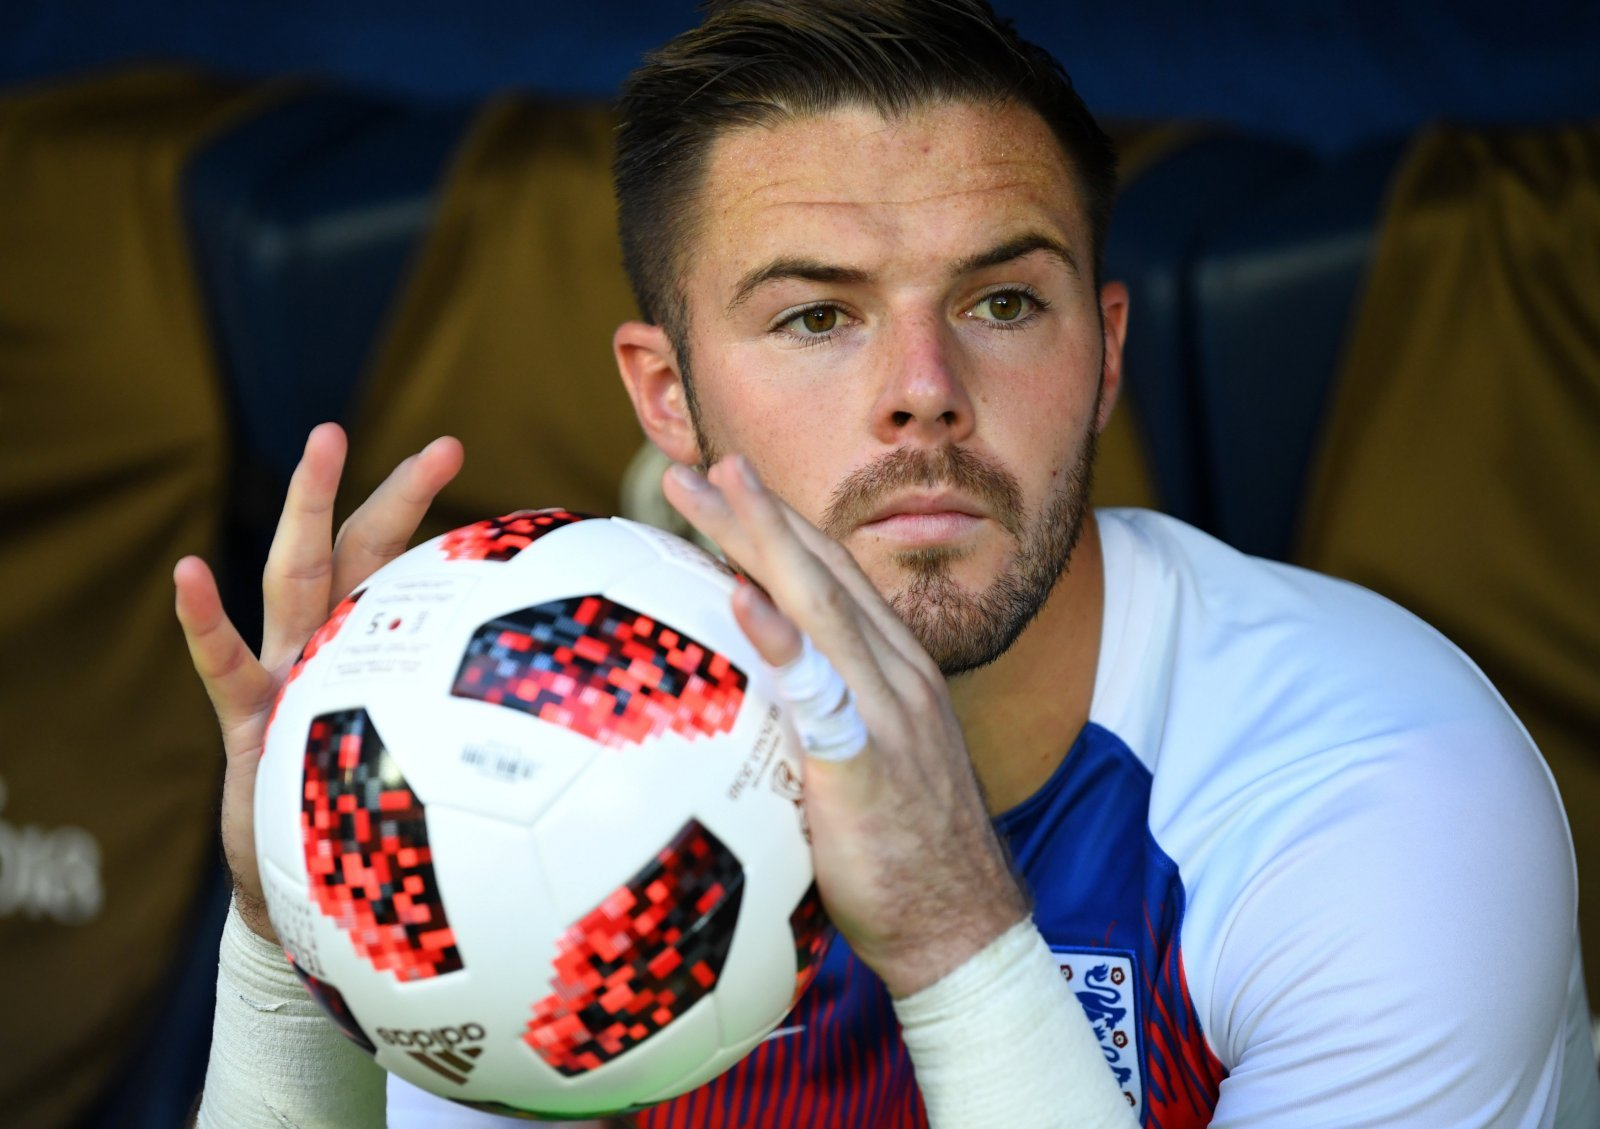 Crystal Palace simply have to strike a deal for Stoke City's Jack Butland